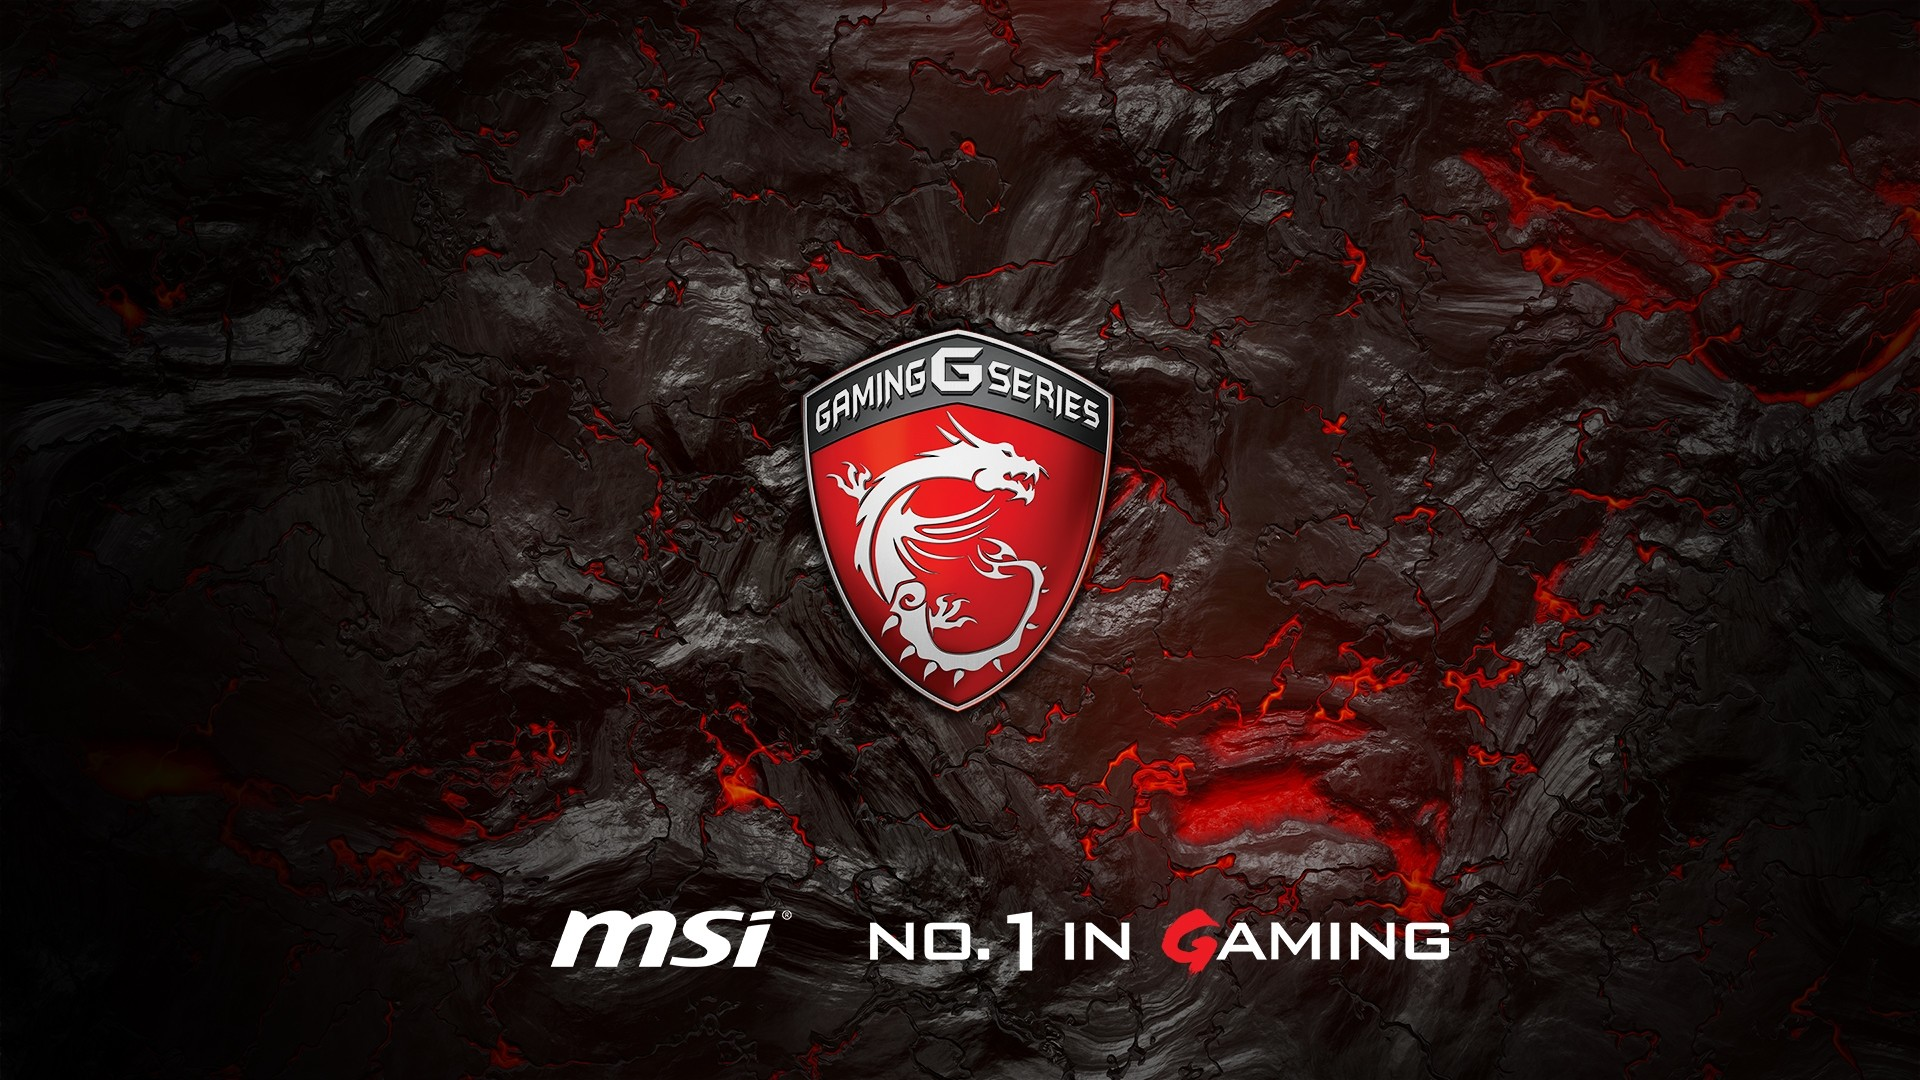 Download MSi Gaming G Series Dragon Logo Background Wallpaper |  Places to Visit | Pinterest